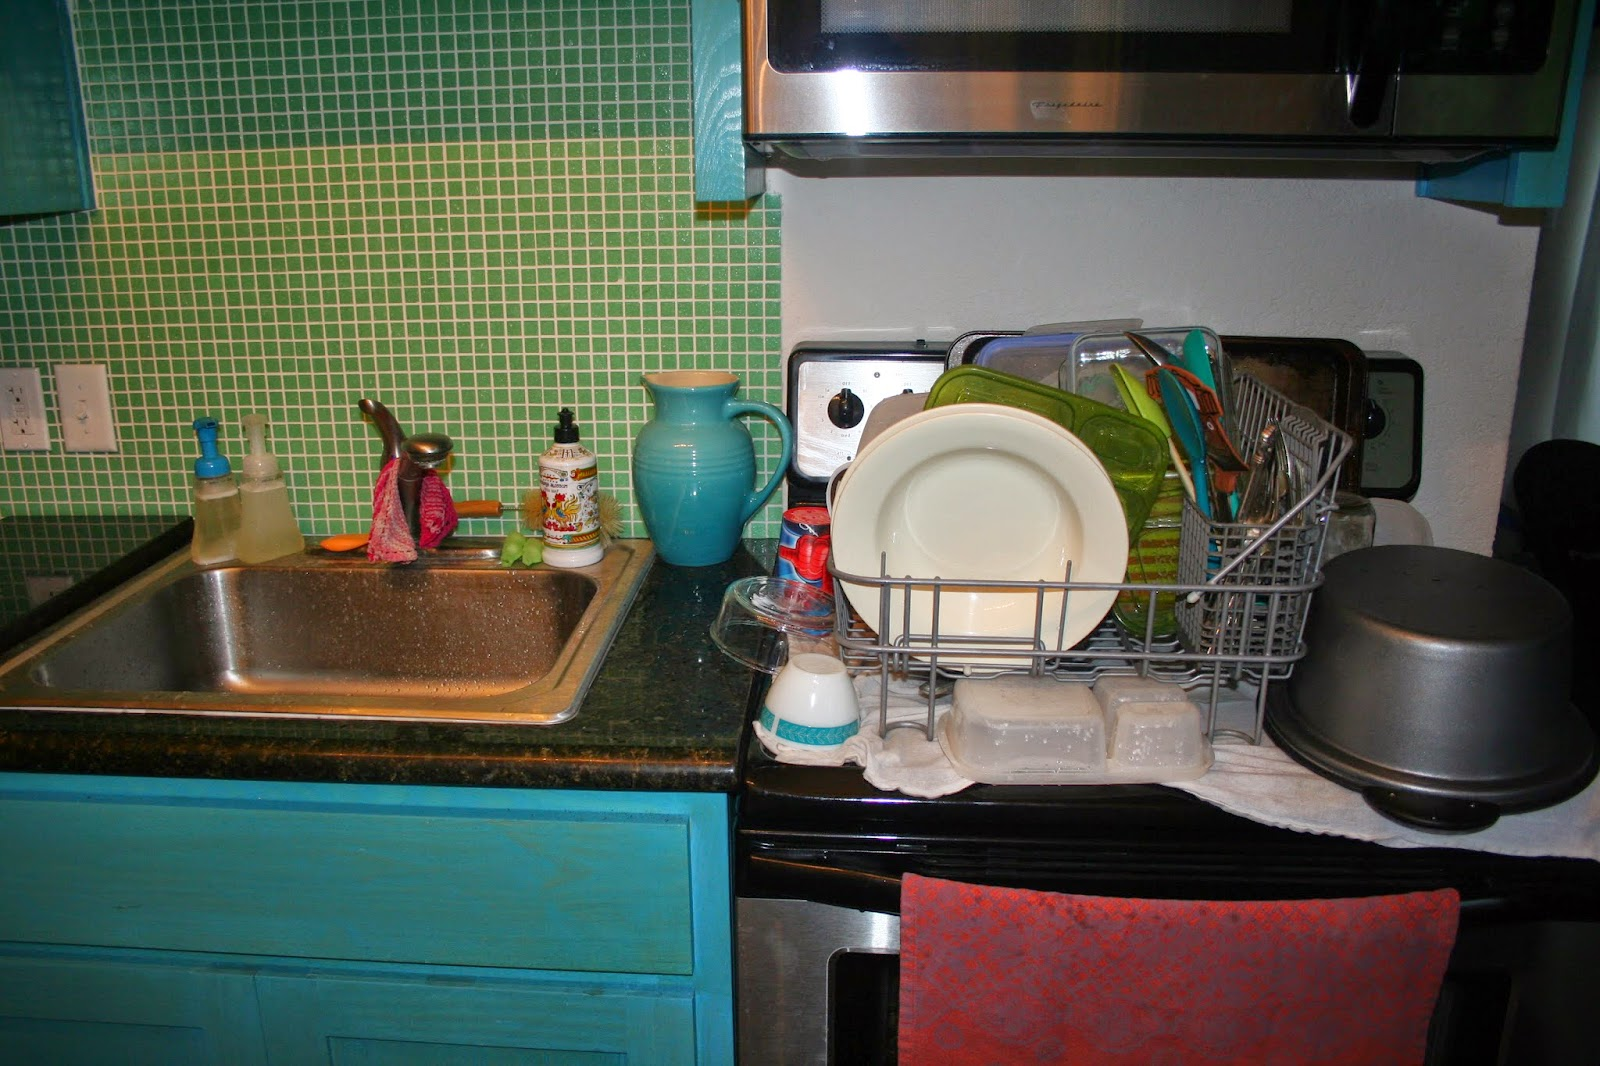 An empty sink and stack of clean dishes makes the world feel better!